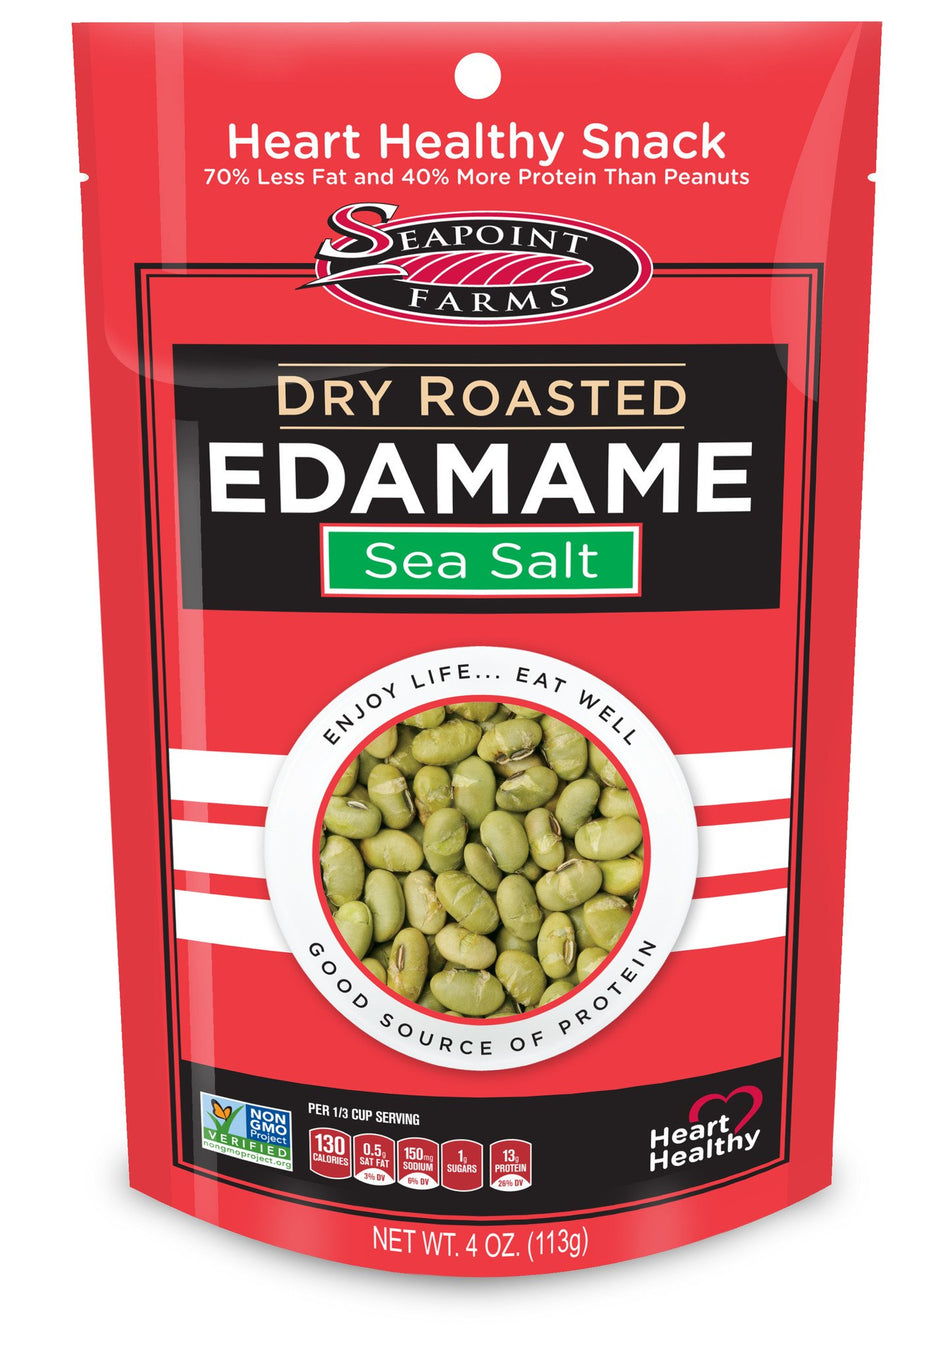 Seapoint Farms Dry Roasted Edamame - Lightly Salted 4oz